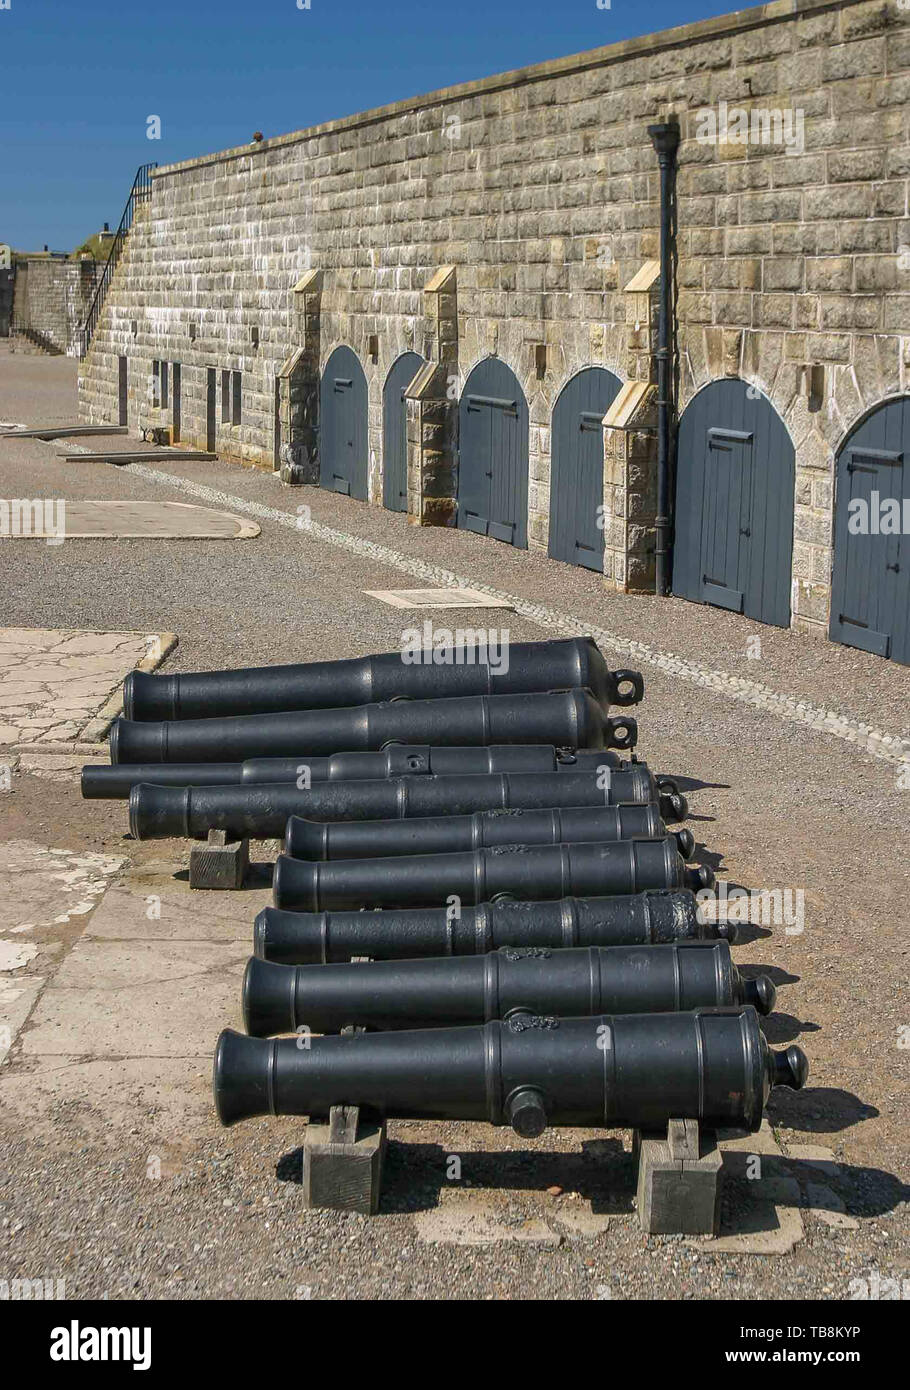 Halifax, Nova Scotia, Canada. 5th Sep, 2005. Many historic antique cannon can be seen on Citadel Hill (Fort George), a National Historic Site in Halifax, Nova Scotia. A living history museum, the fort is among the most visited sites in Atlantic Canada. Credit: Arnold Drapkin/ZUMA Wire/Alamy Live News - Stock Image